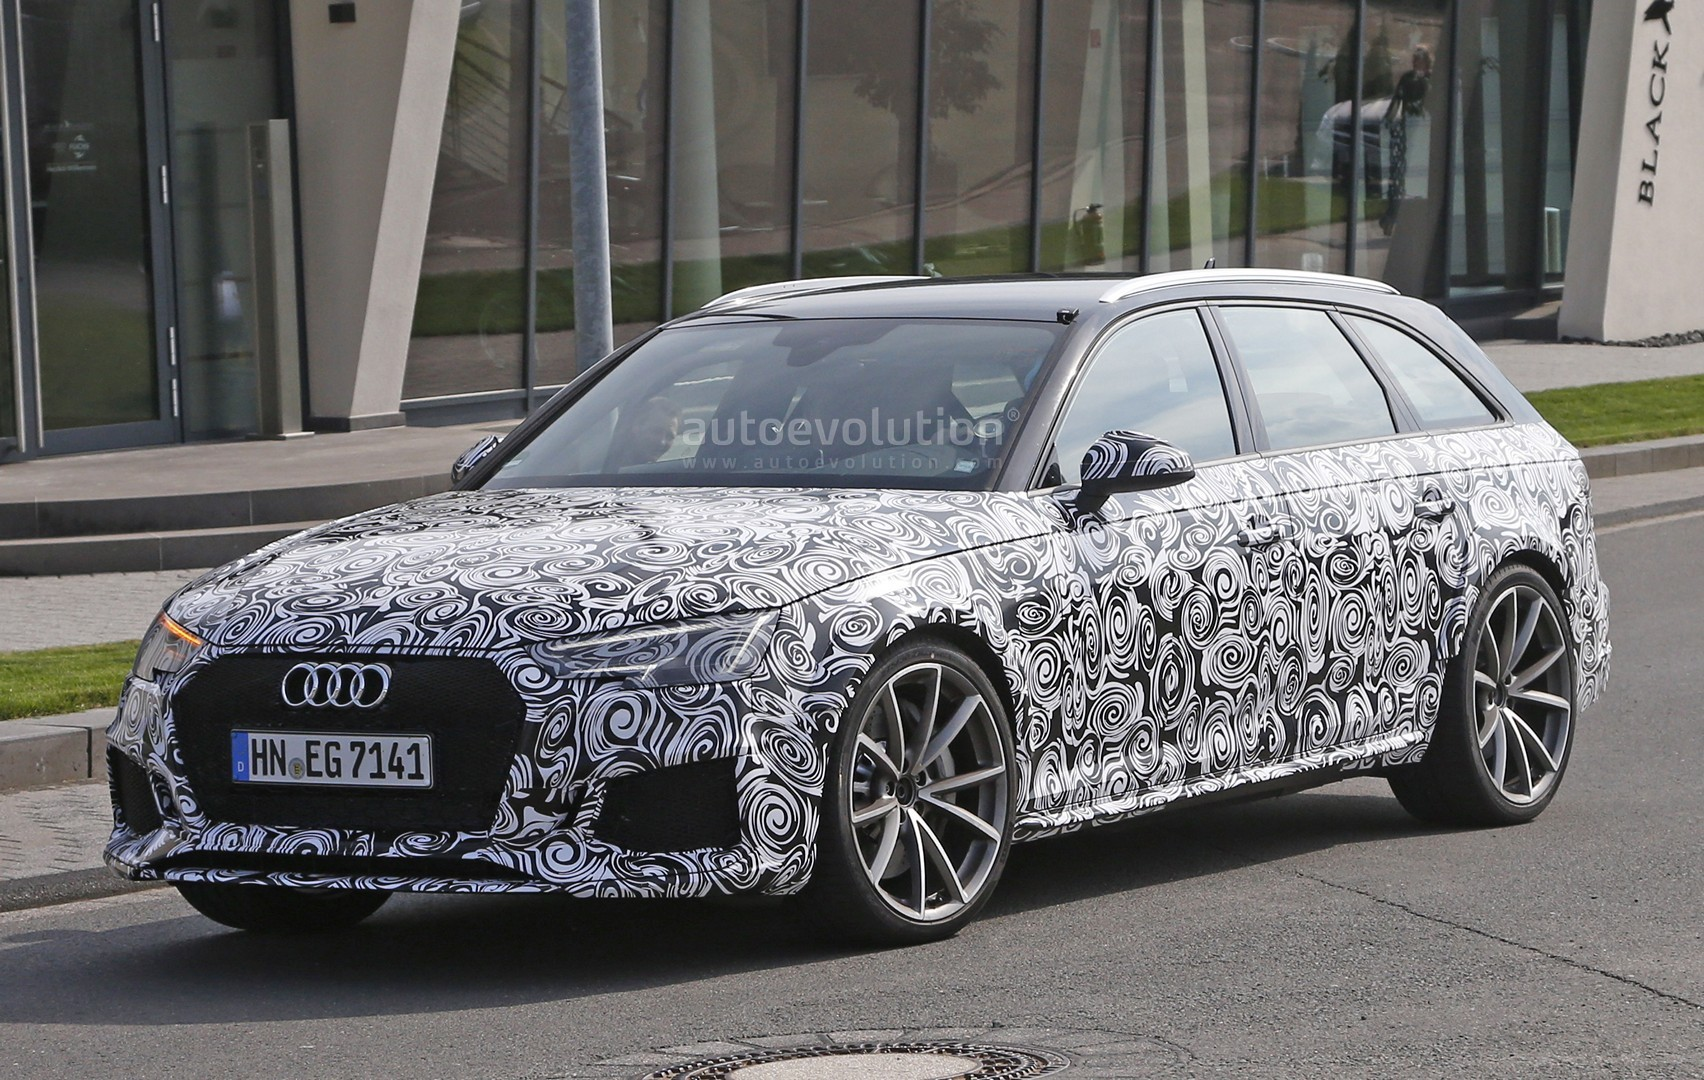 Spyshots: 2018 Audi RS4 Avant Prototype Looks Very Muscular ...